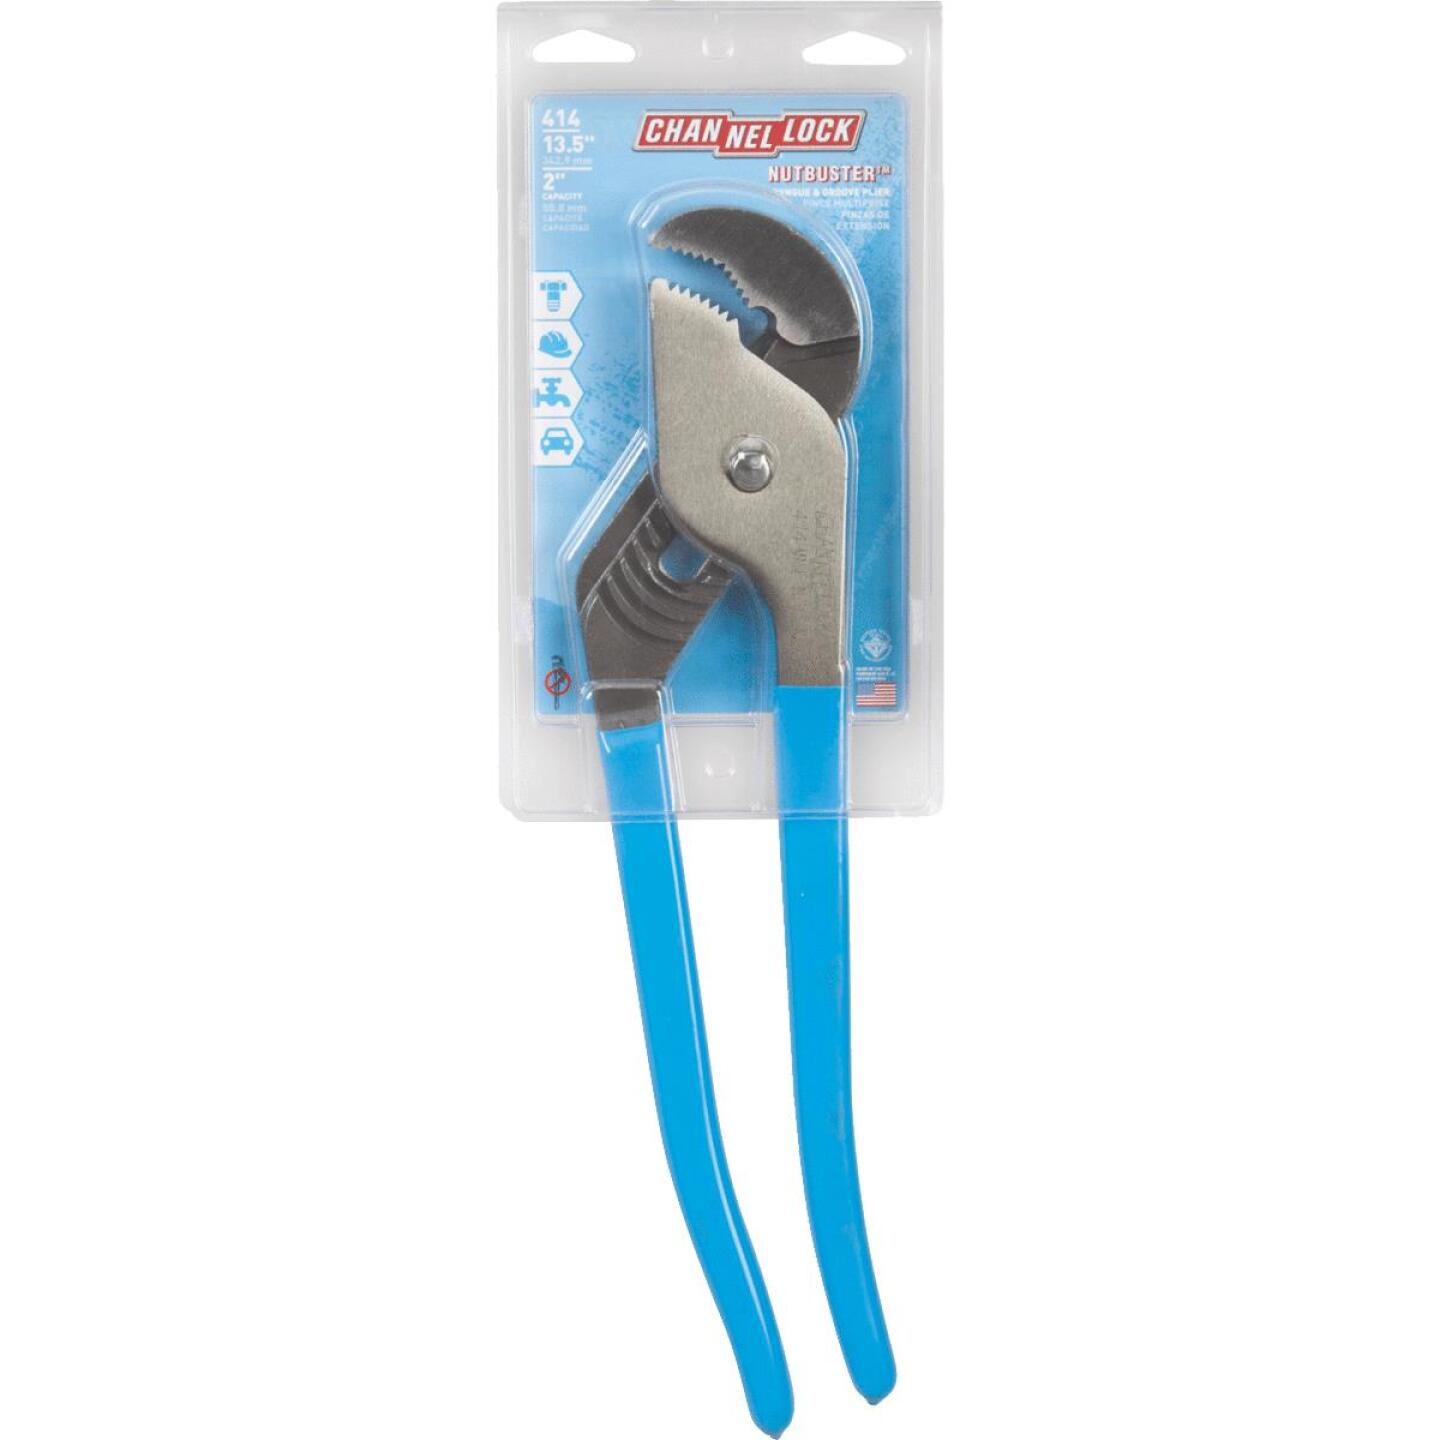 Channellock Nutbuster 14 In. Curved Jaw Groove Joint Pliers Image 2